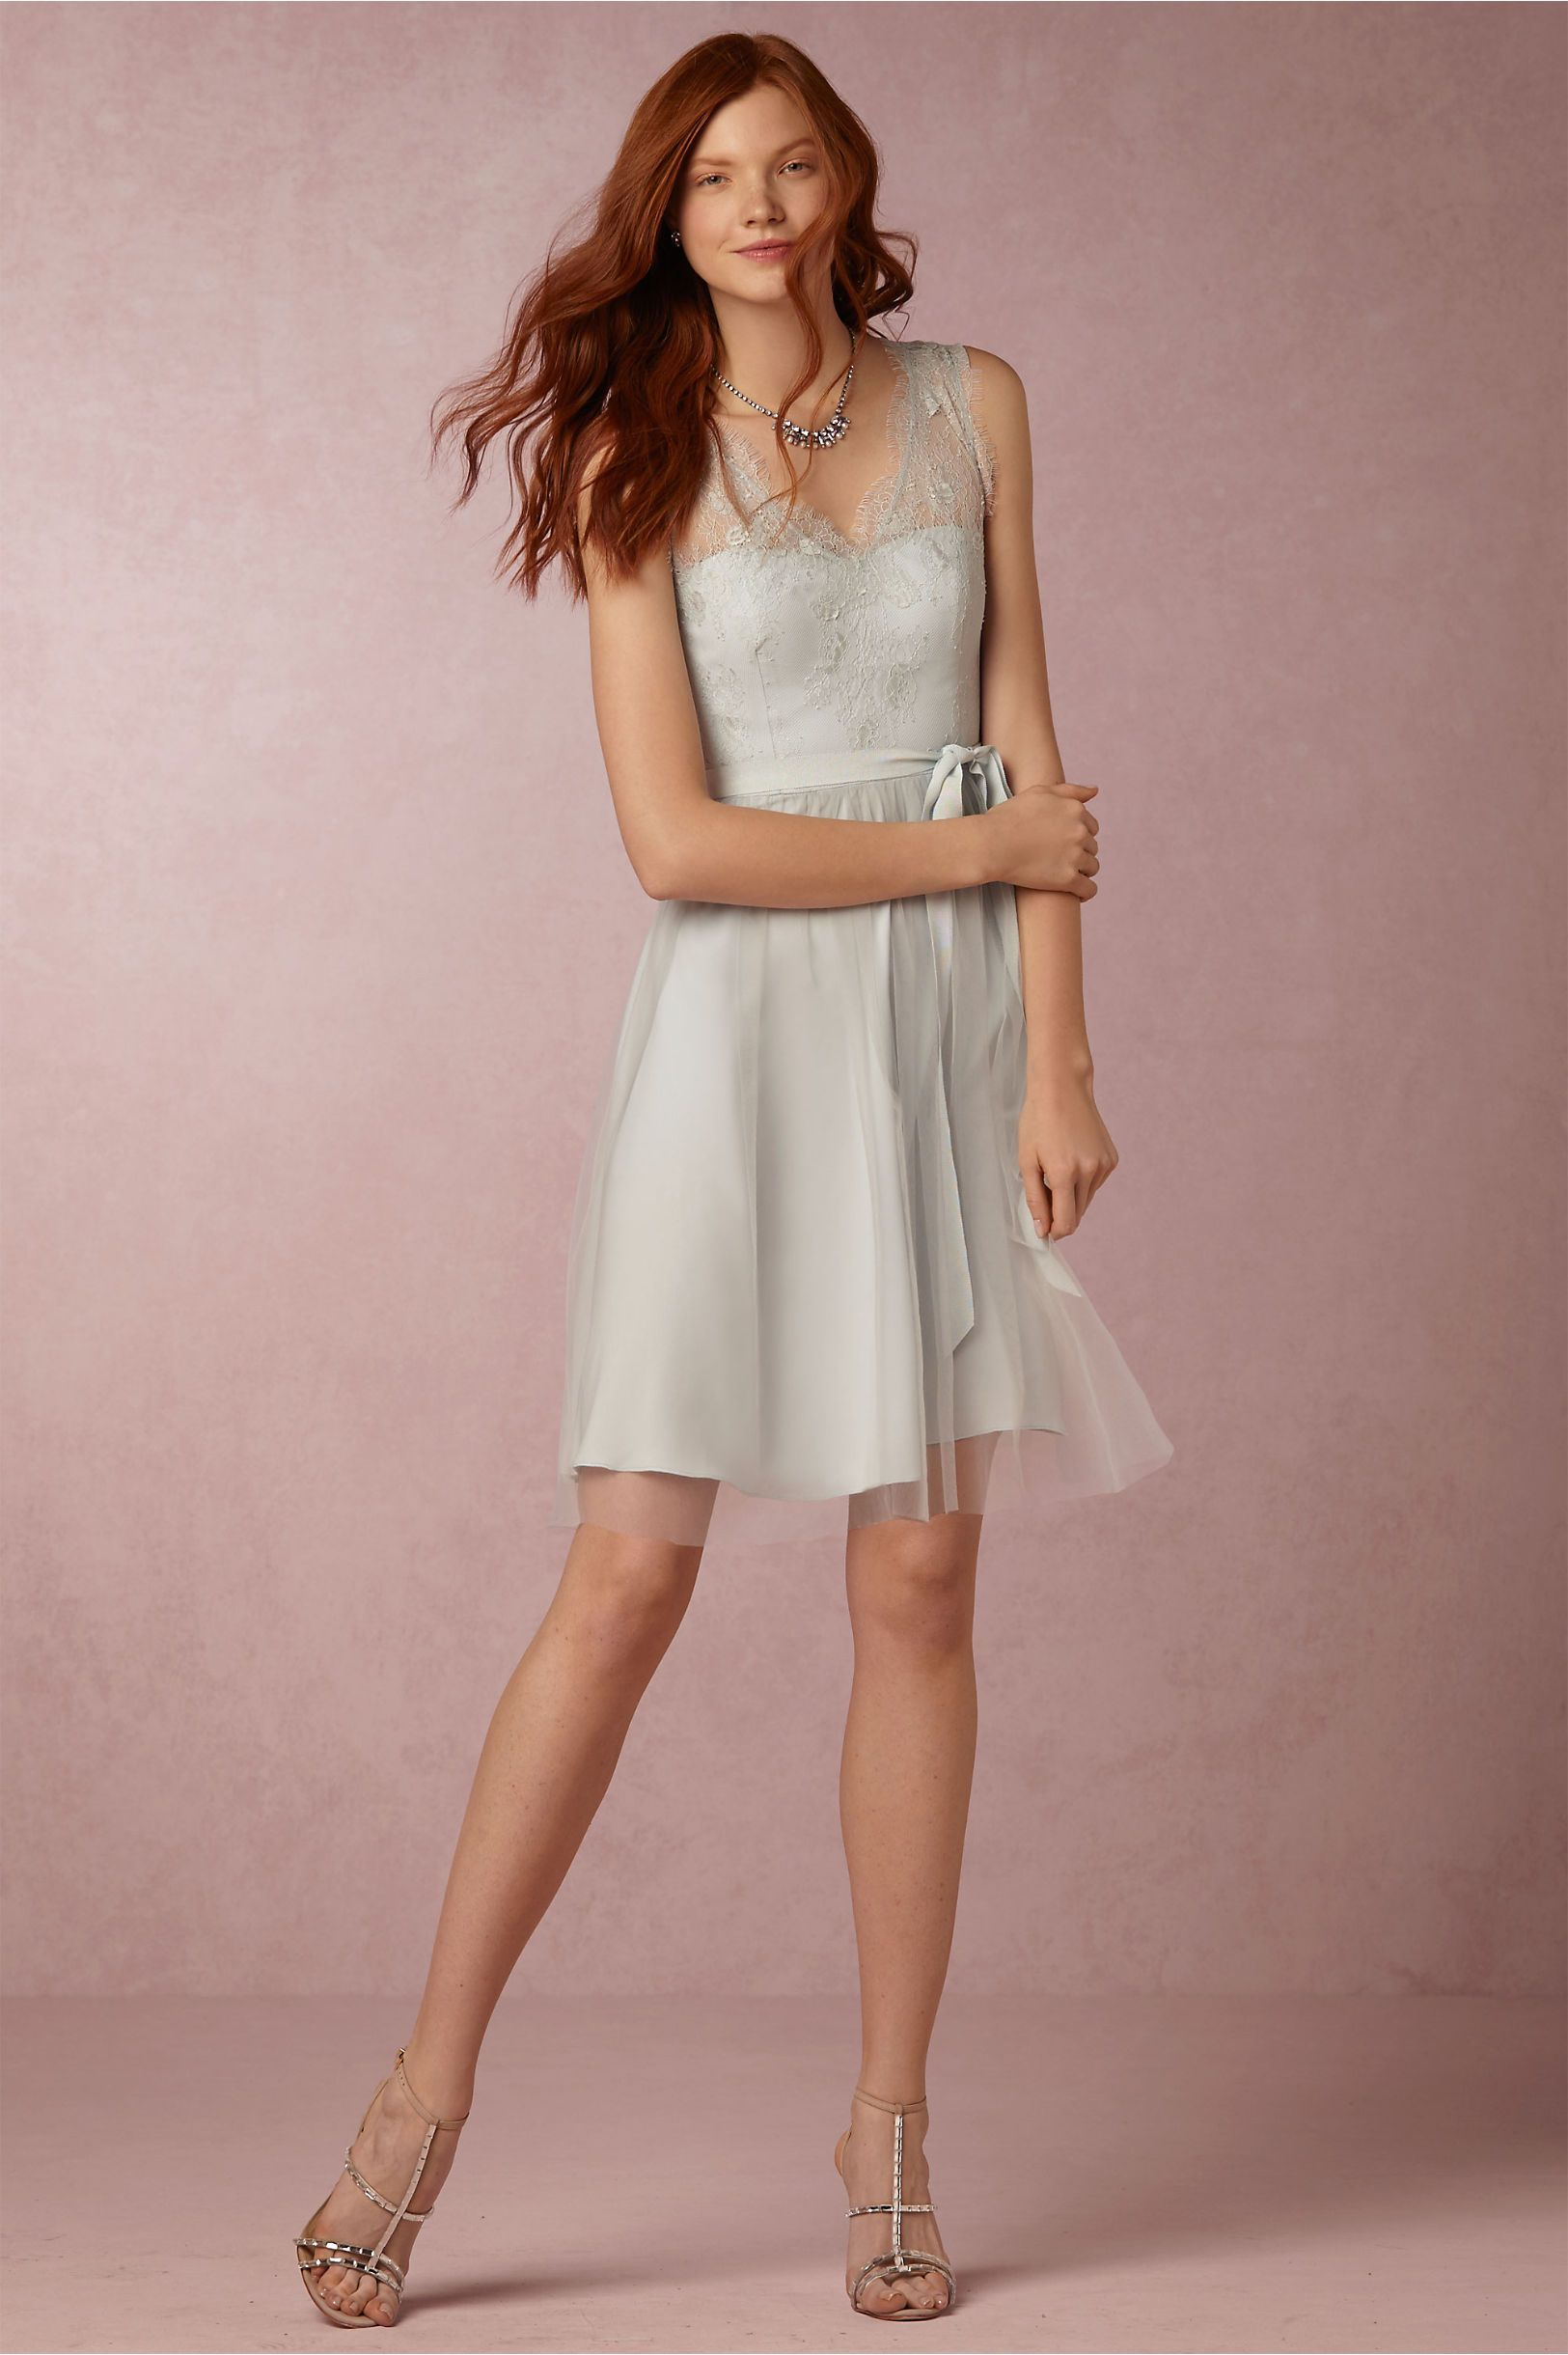 Cocktail dresses for wedding reception  BHLDN Lina Dress in Sale at BHLDN  MOH dress stylecolor ideas